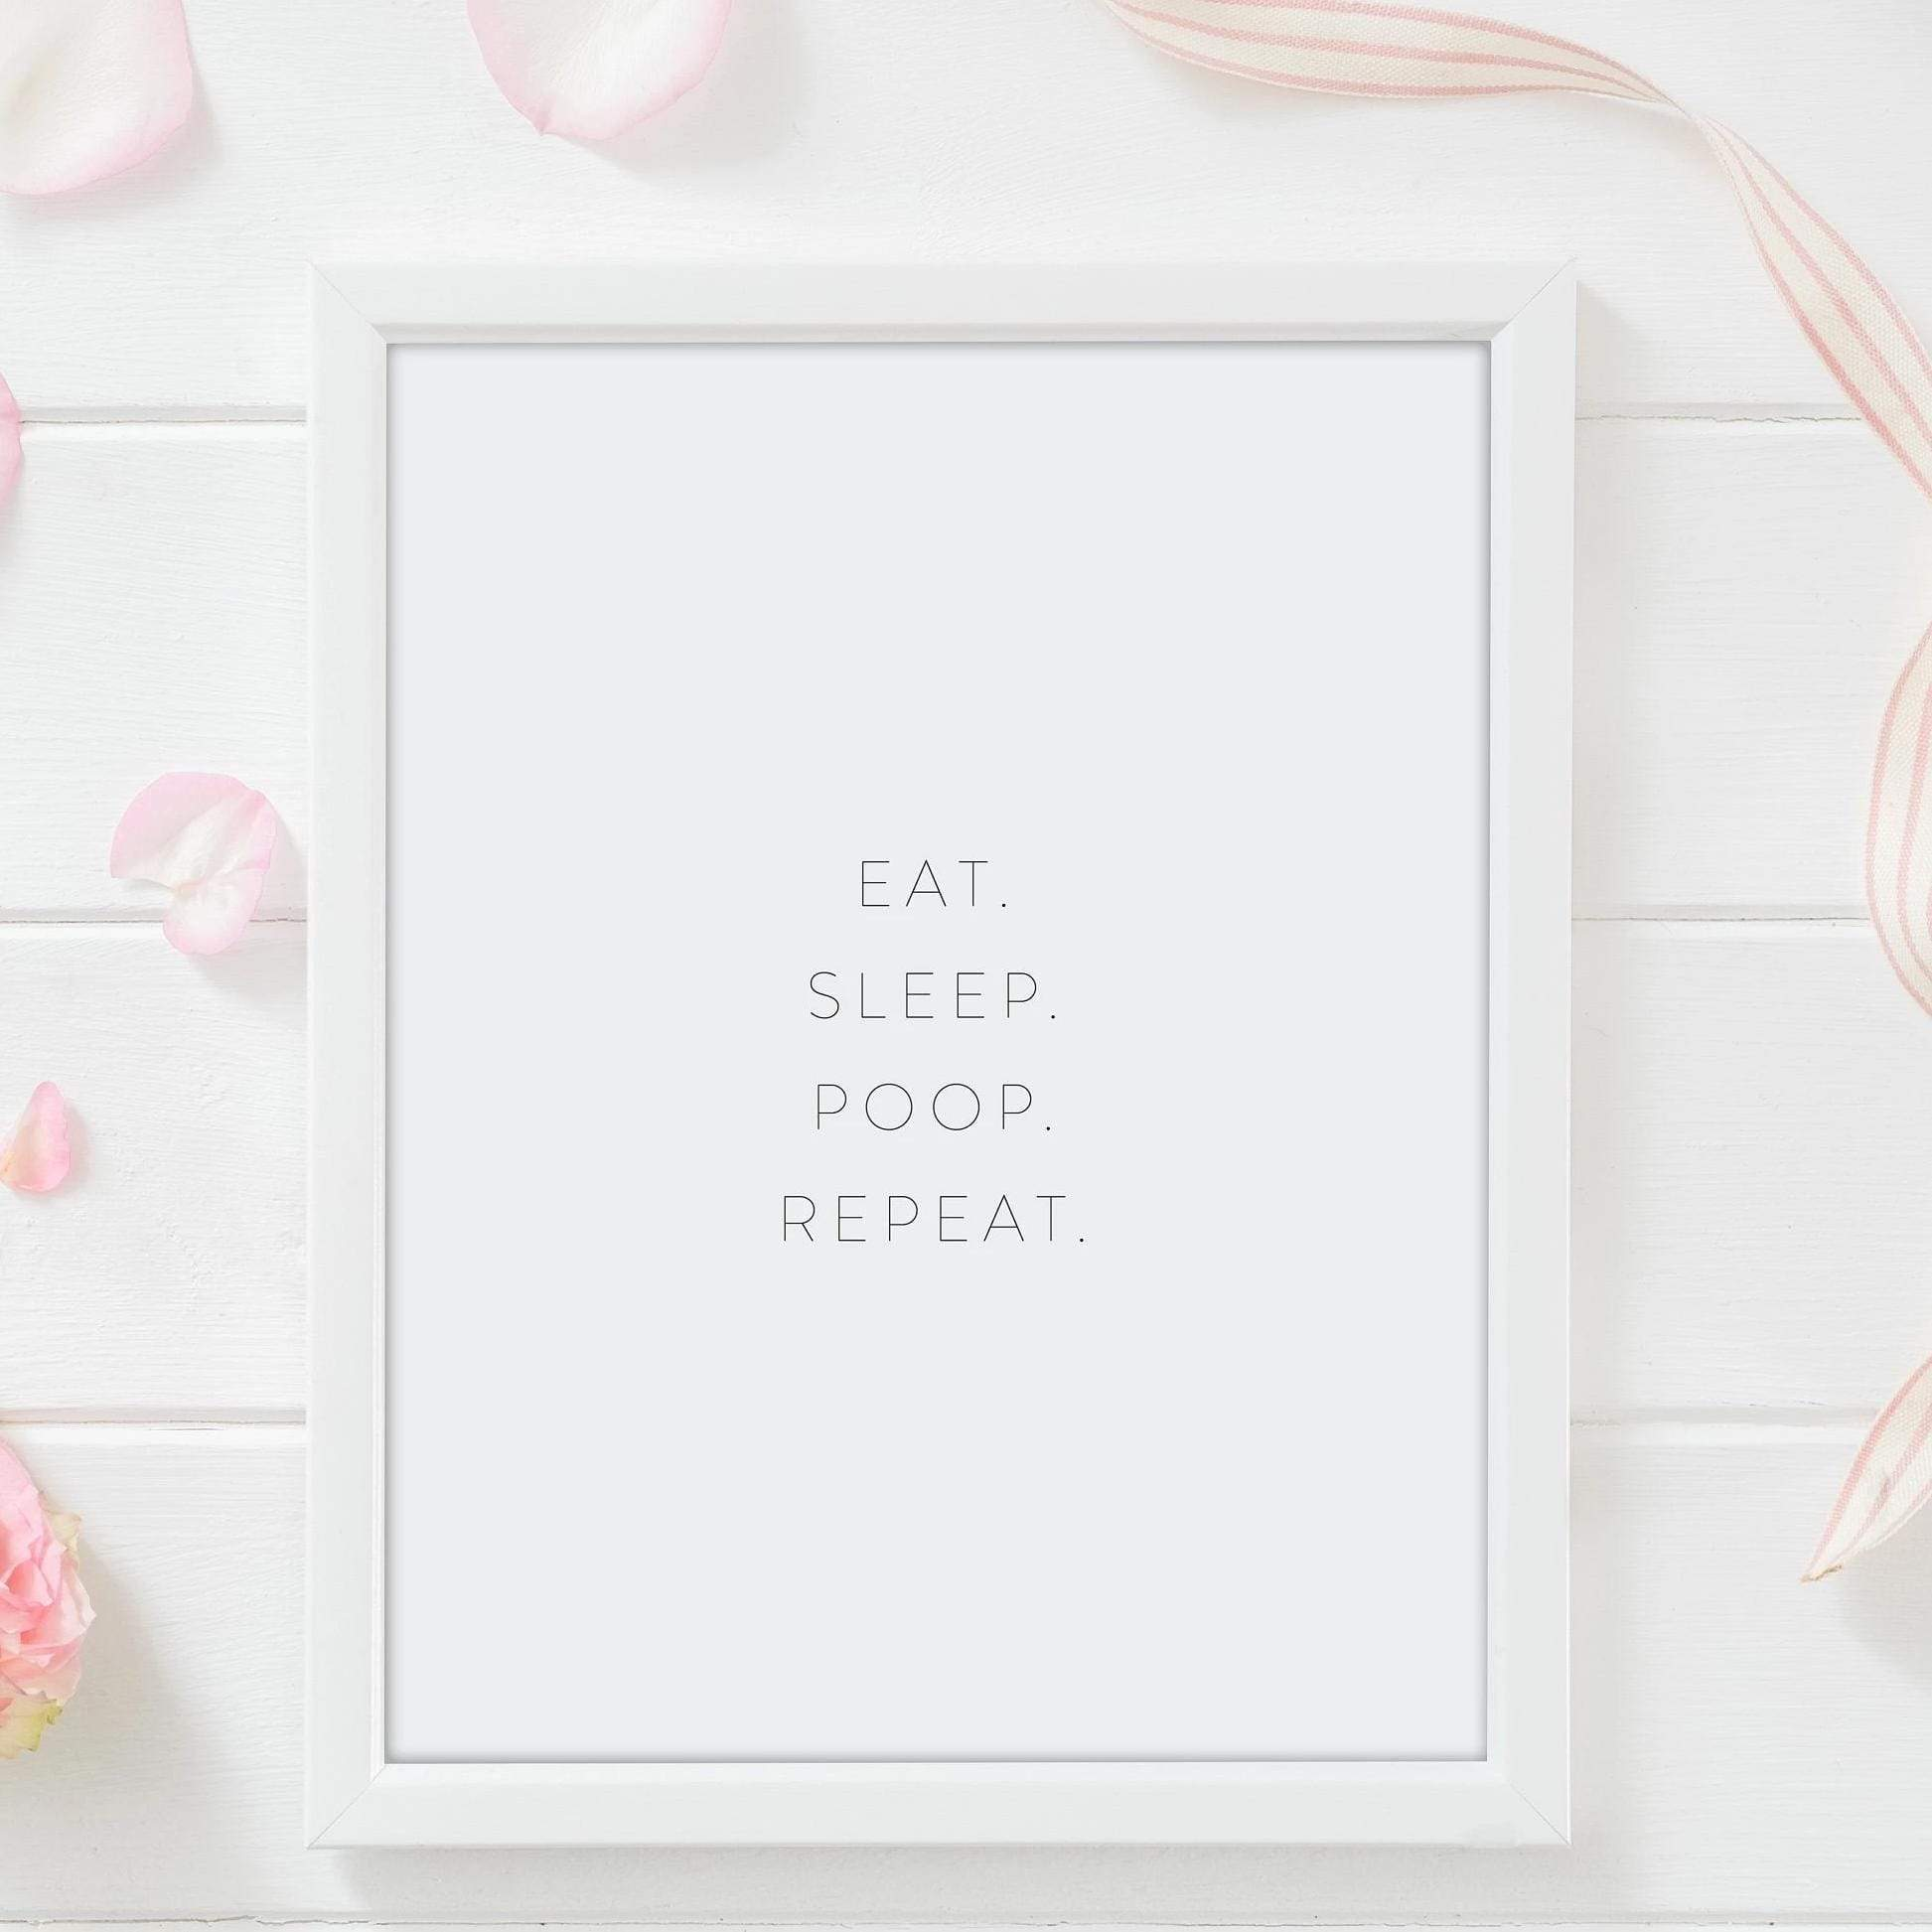 Leanne & Co. Digital Print Eat. Sleep. Poop. Repeat.